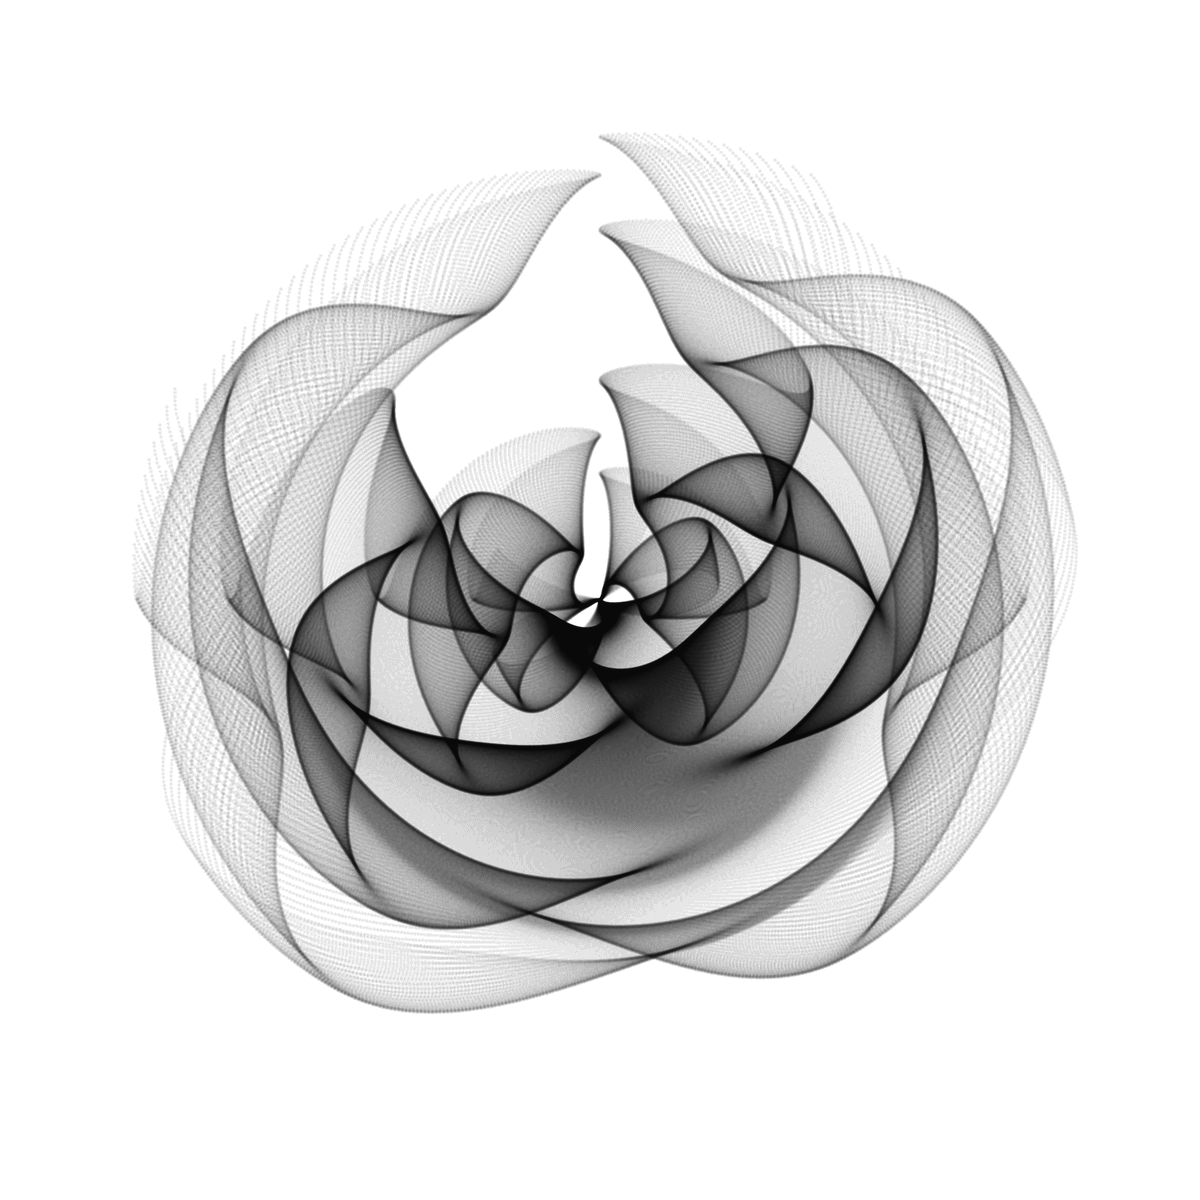 #rose library(tidyverse) seq(-3,3,by=.01) %>%   expand.grid(x=., y=.) %>%   ggplot(aes(x=(1-x-sin(y^2)), y=(1+y-cos(x^2)))) +   geom_point(alpha=.05, shape=20, size=0)+   theme_void()+   coord_polar() #rtistry #rstats #Maths #generativeart